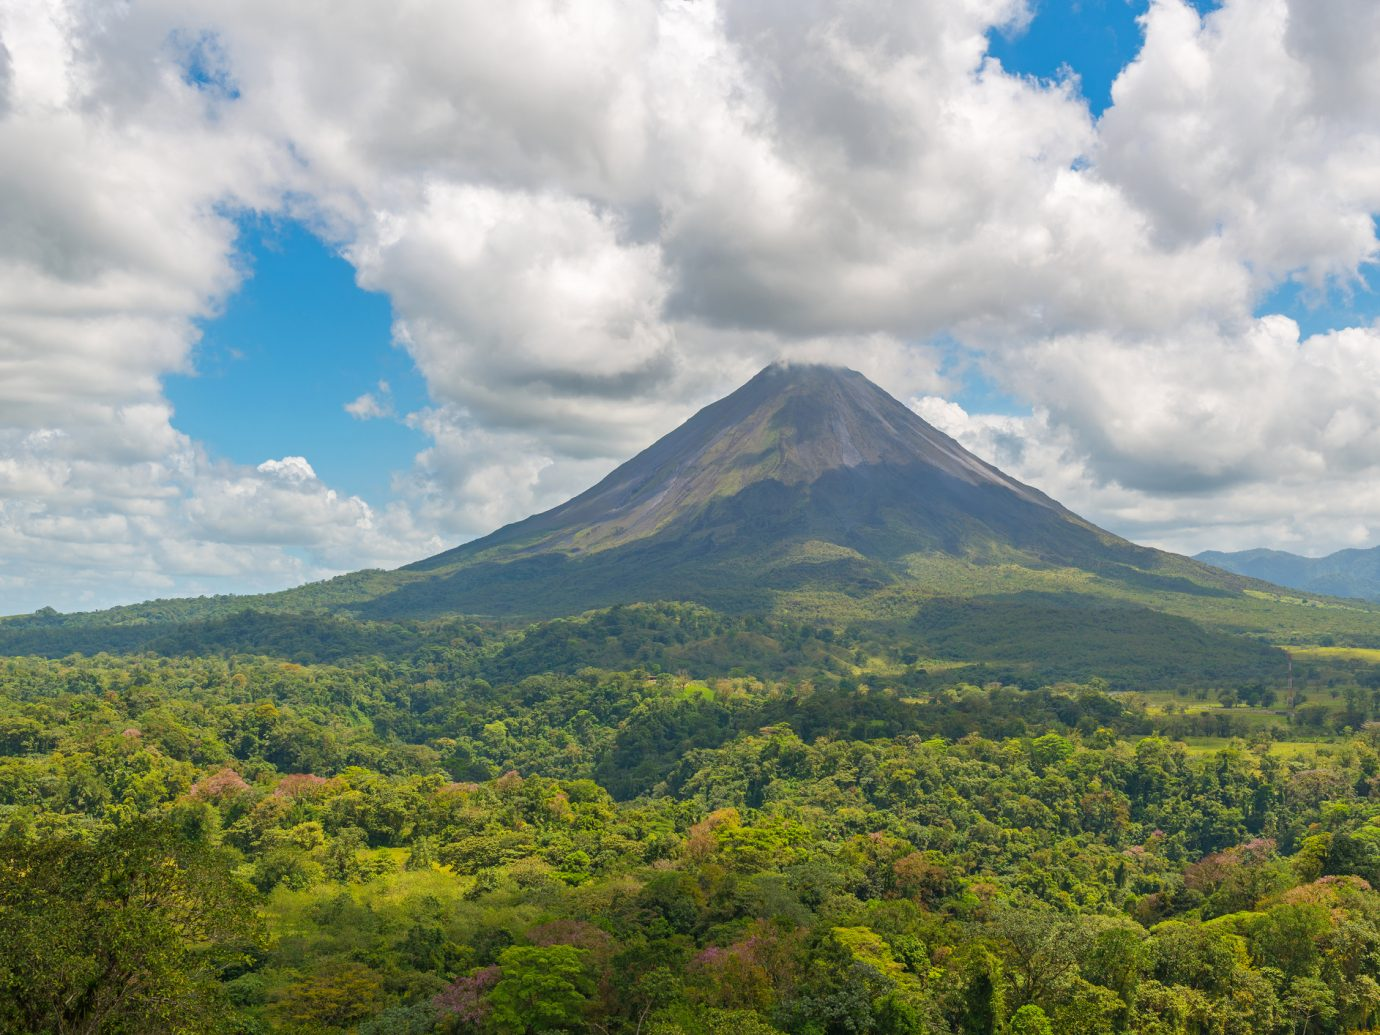 Landscape of the Arenal volcano surrounded by tropical rainforest on a sunny summer day near the cities of La Fortuna and San Jose, Costa Rica, Central America.